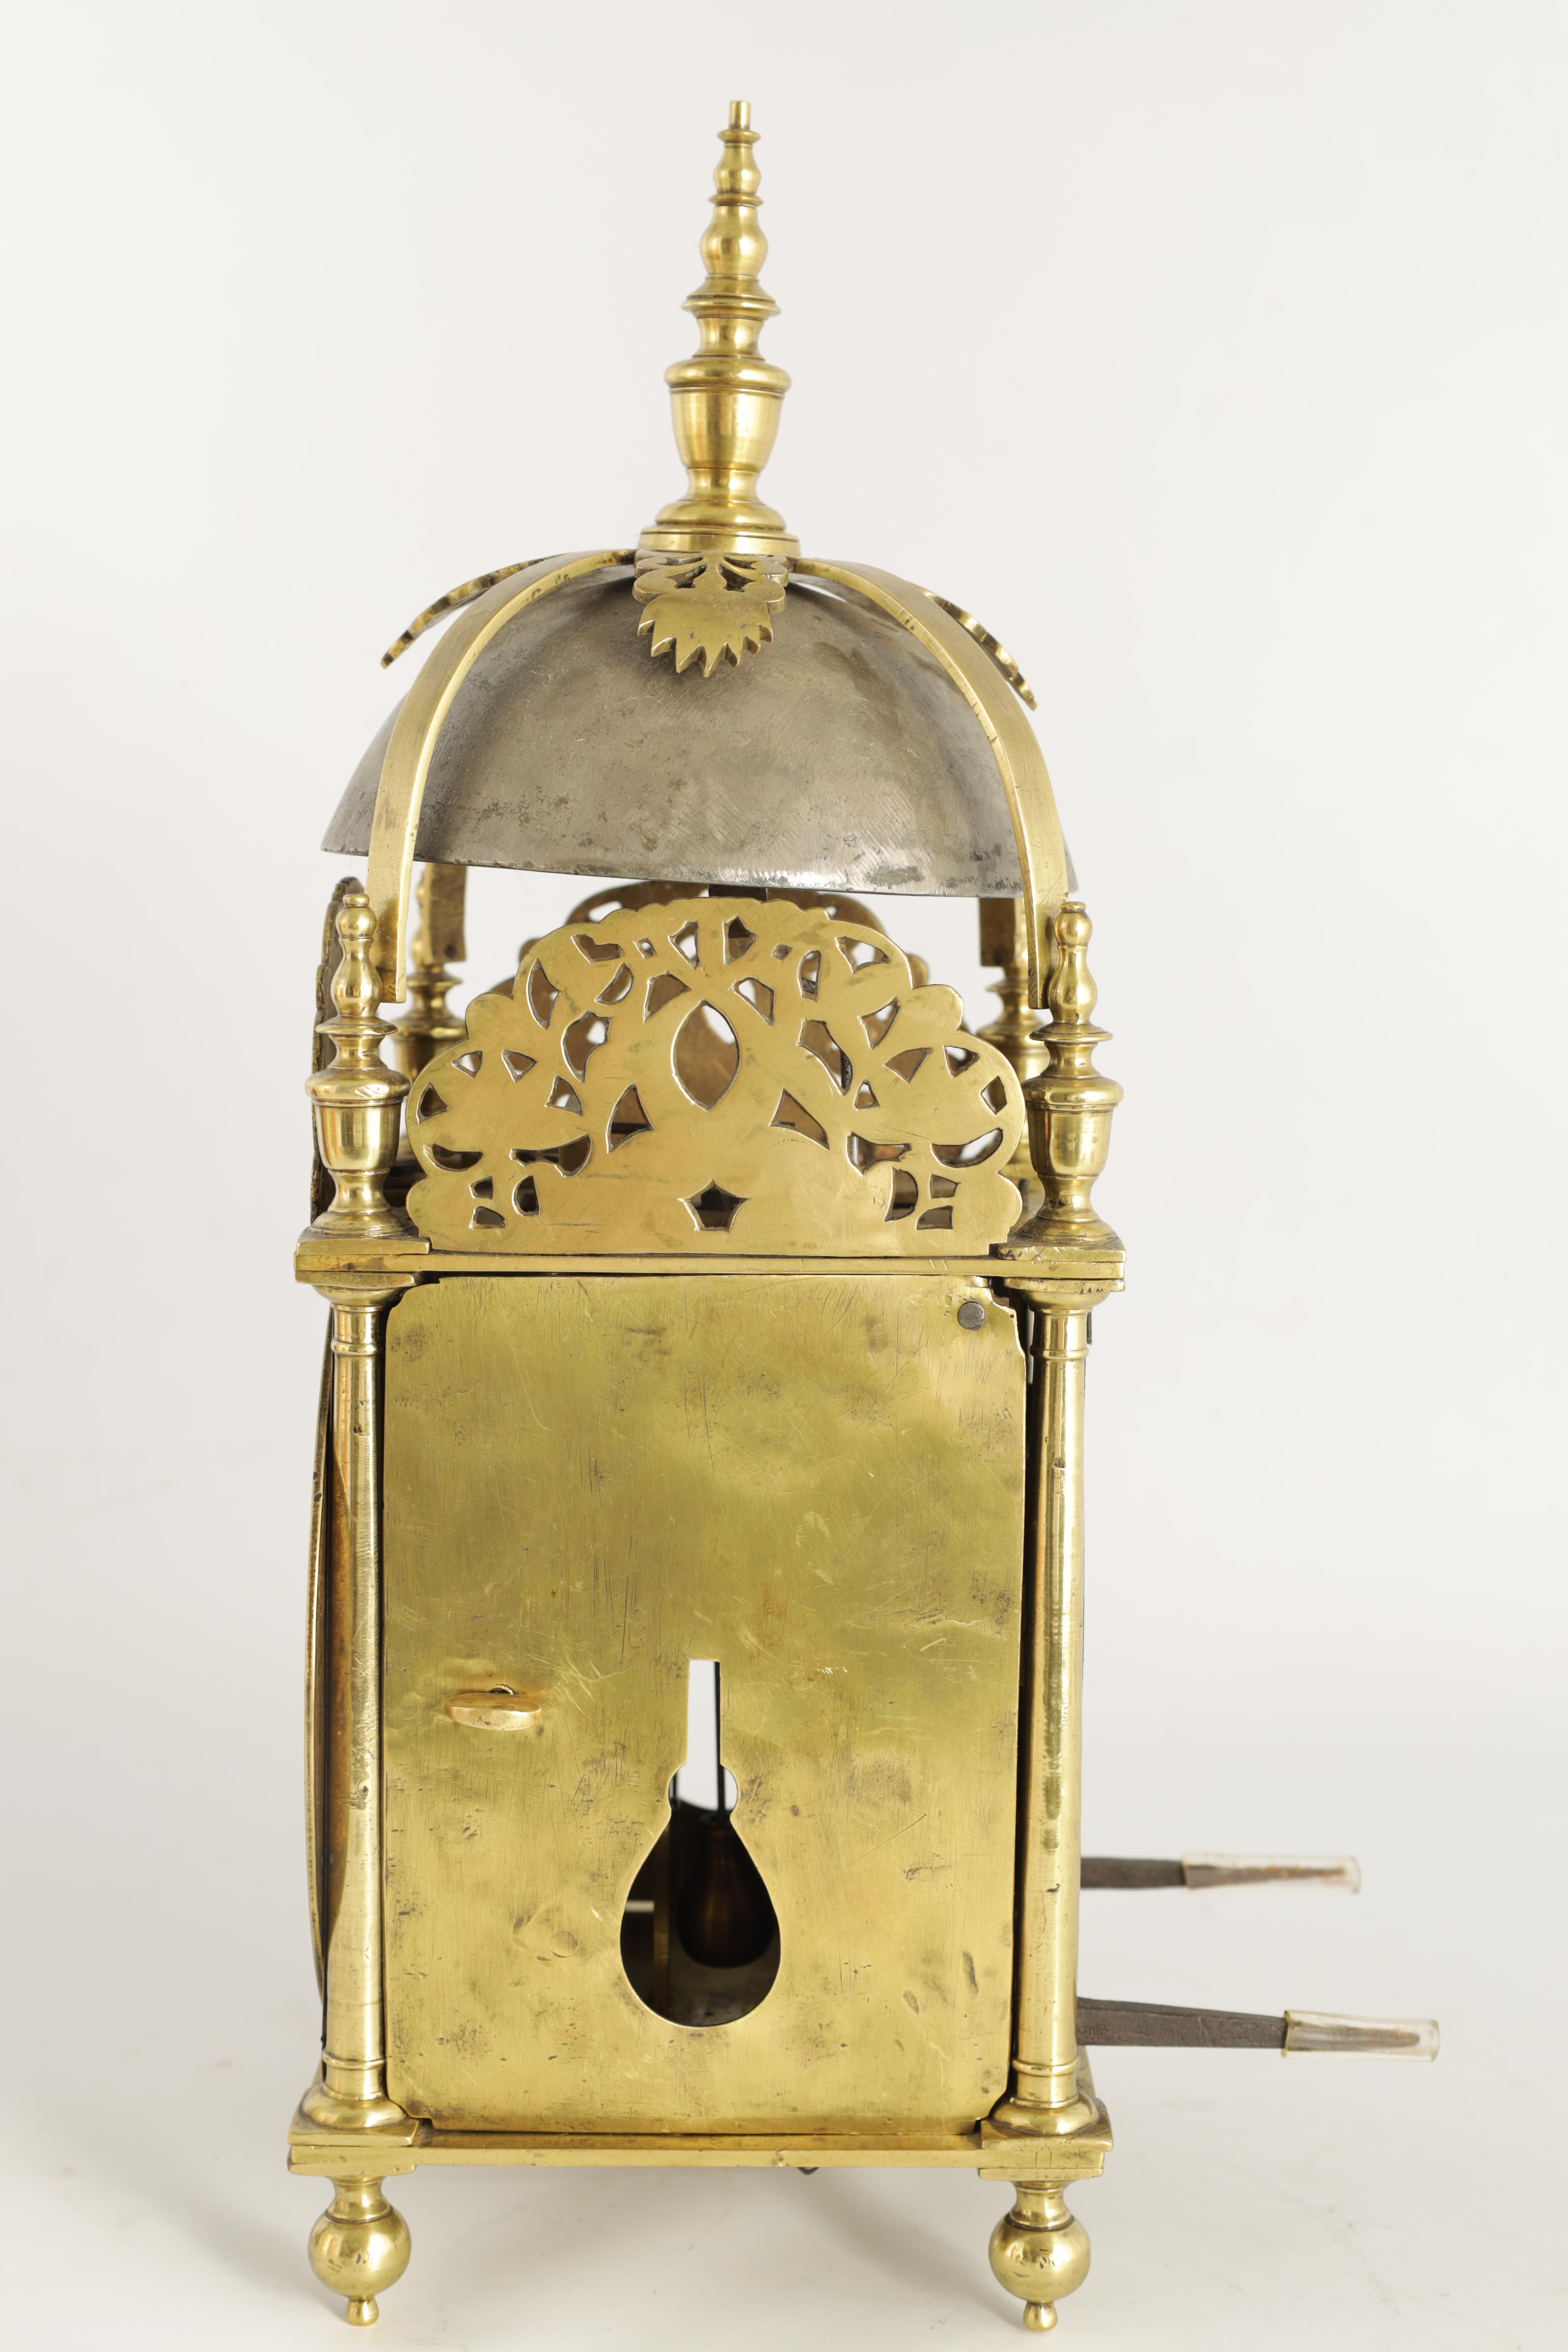 A FINE CHARLES II BRASS LANTERN CLOCKthe posted frame with side doors, engraved fretwork - Image 6 of 9